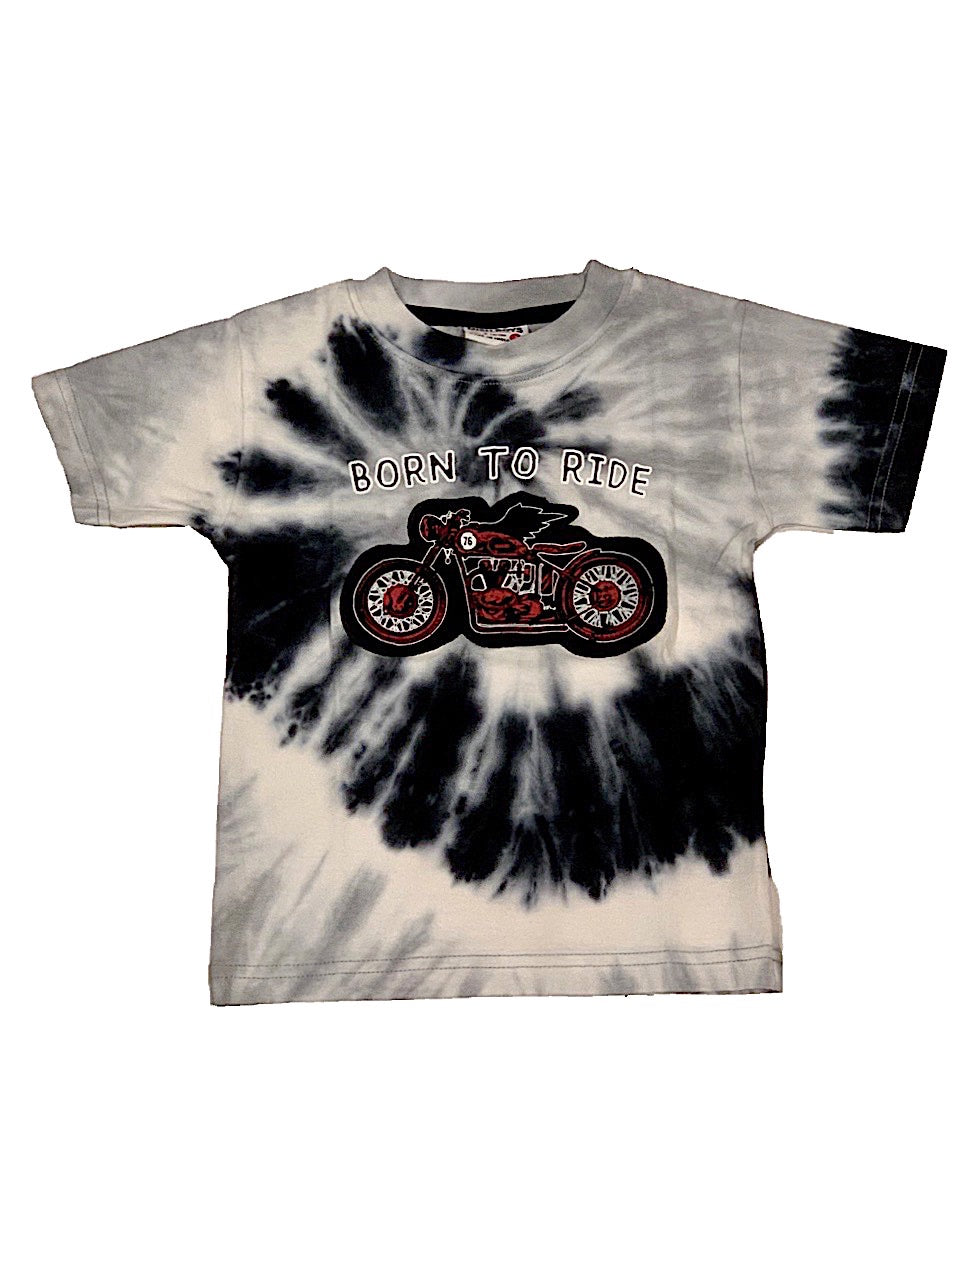 Mish Mish Black and Gray Tie Dye Born To Ride